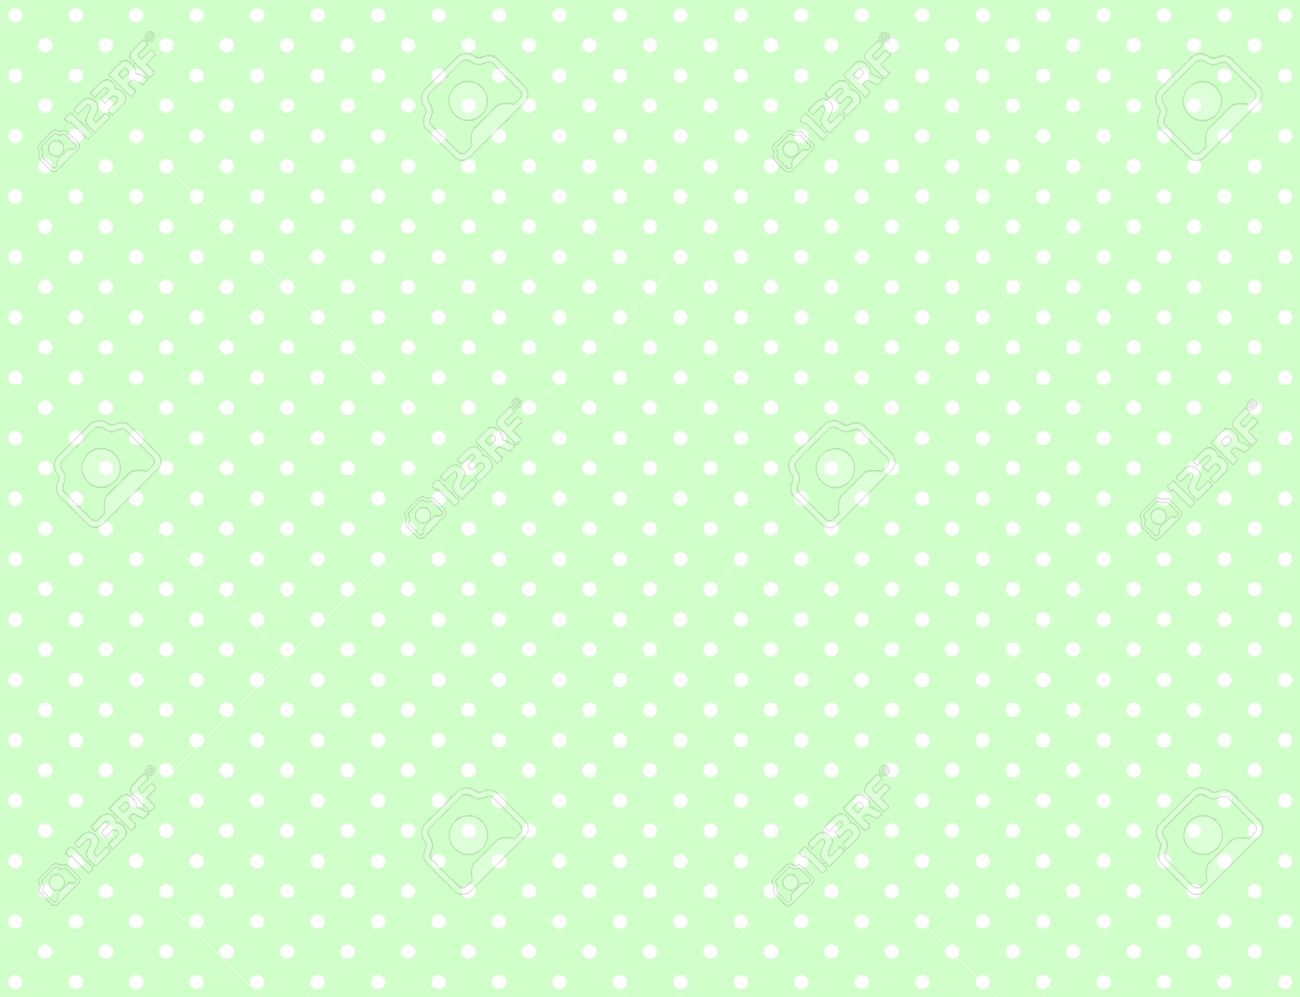 Light Green Background With White Dots Stock Photo Picture And Royalty Free Image Image 42055675 The best selection of royalty free light green background vector art, graphics and stock illustrations. light green background with white dots